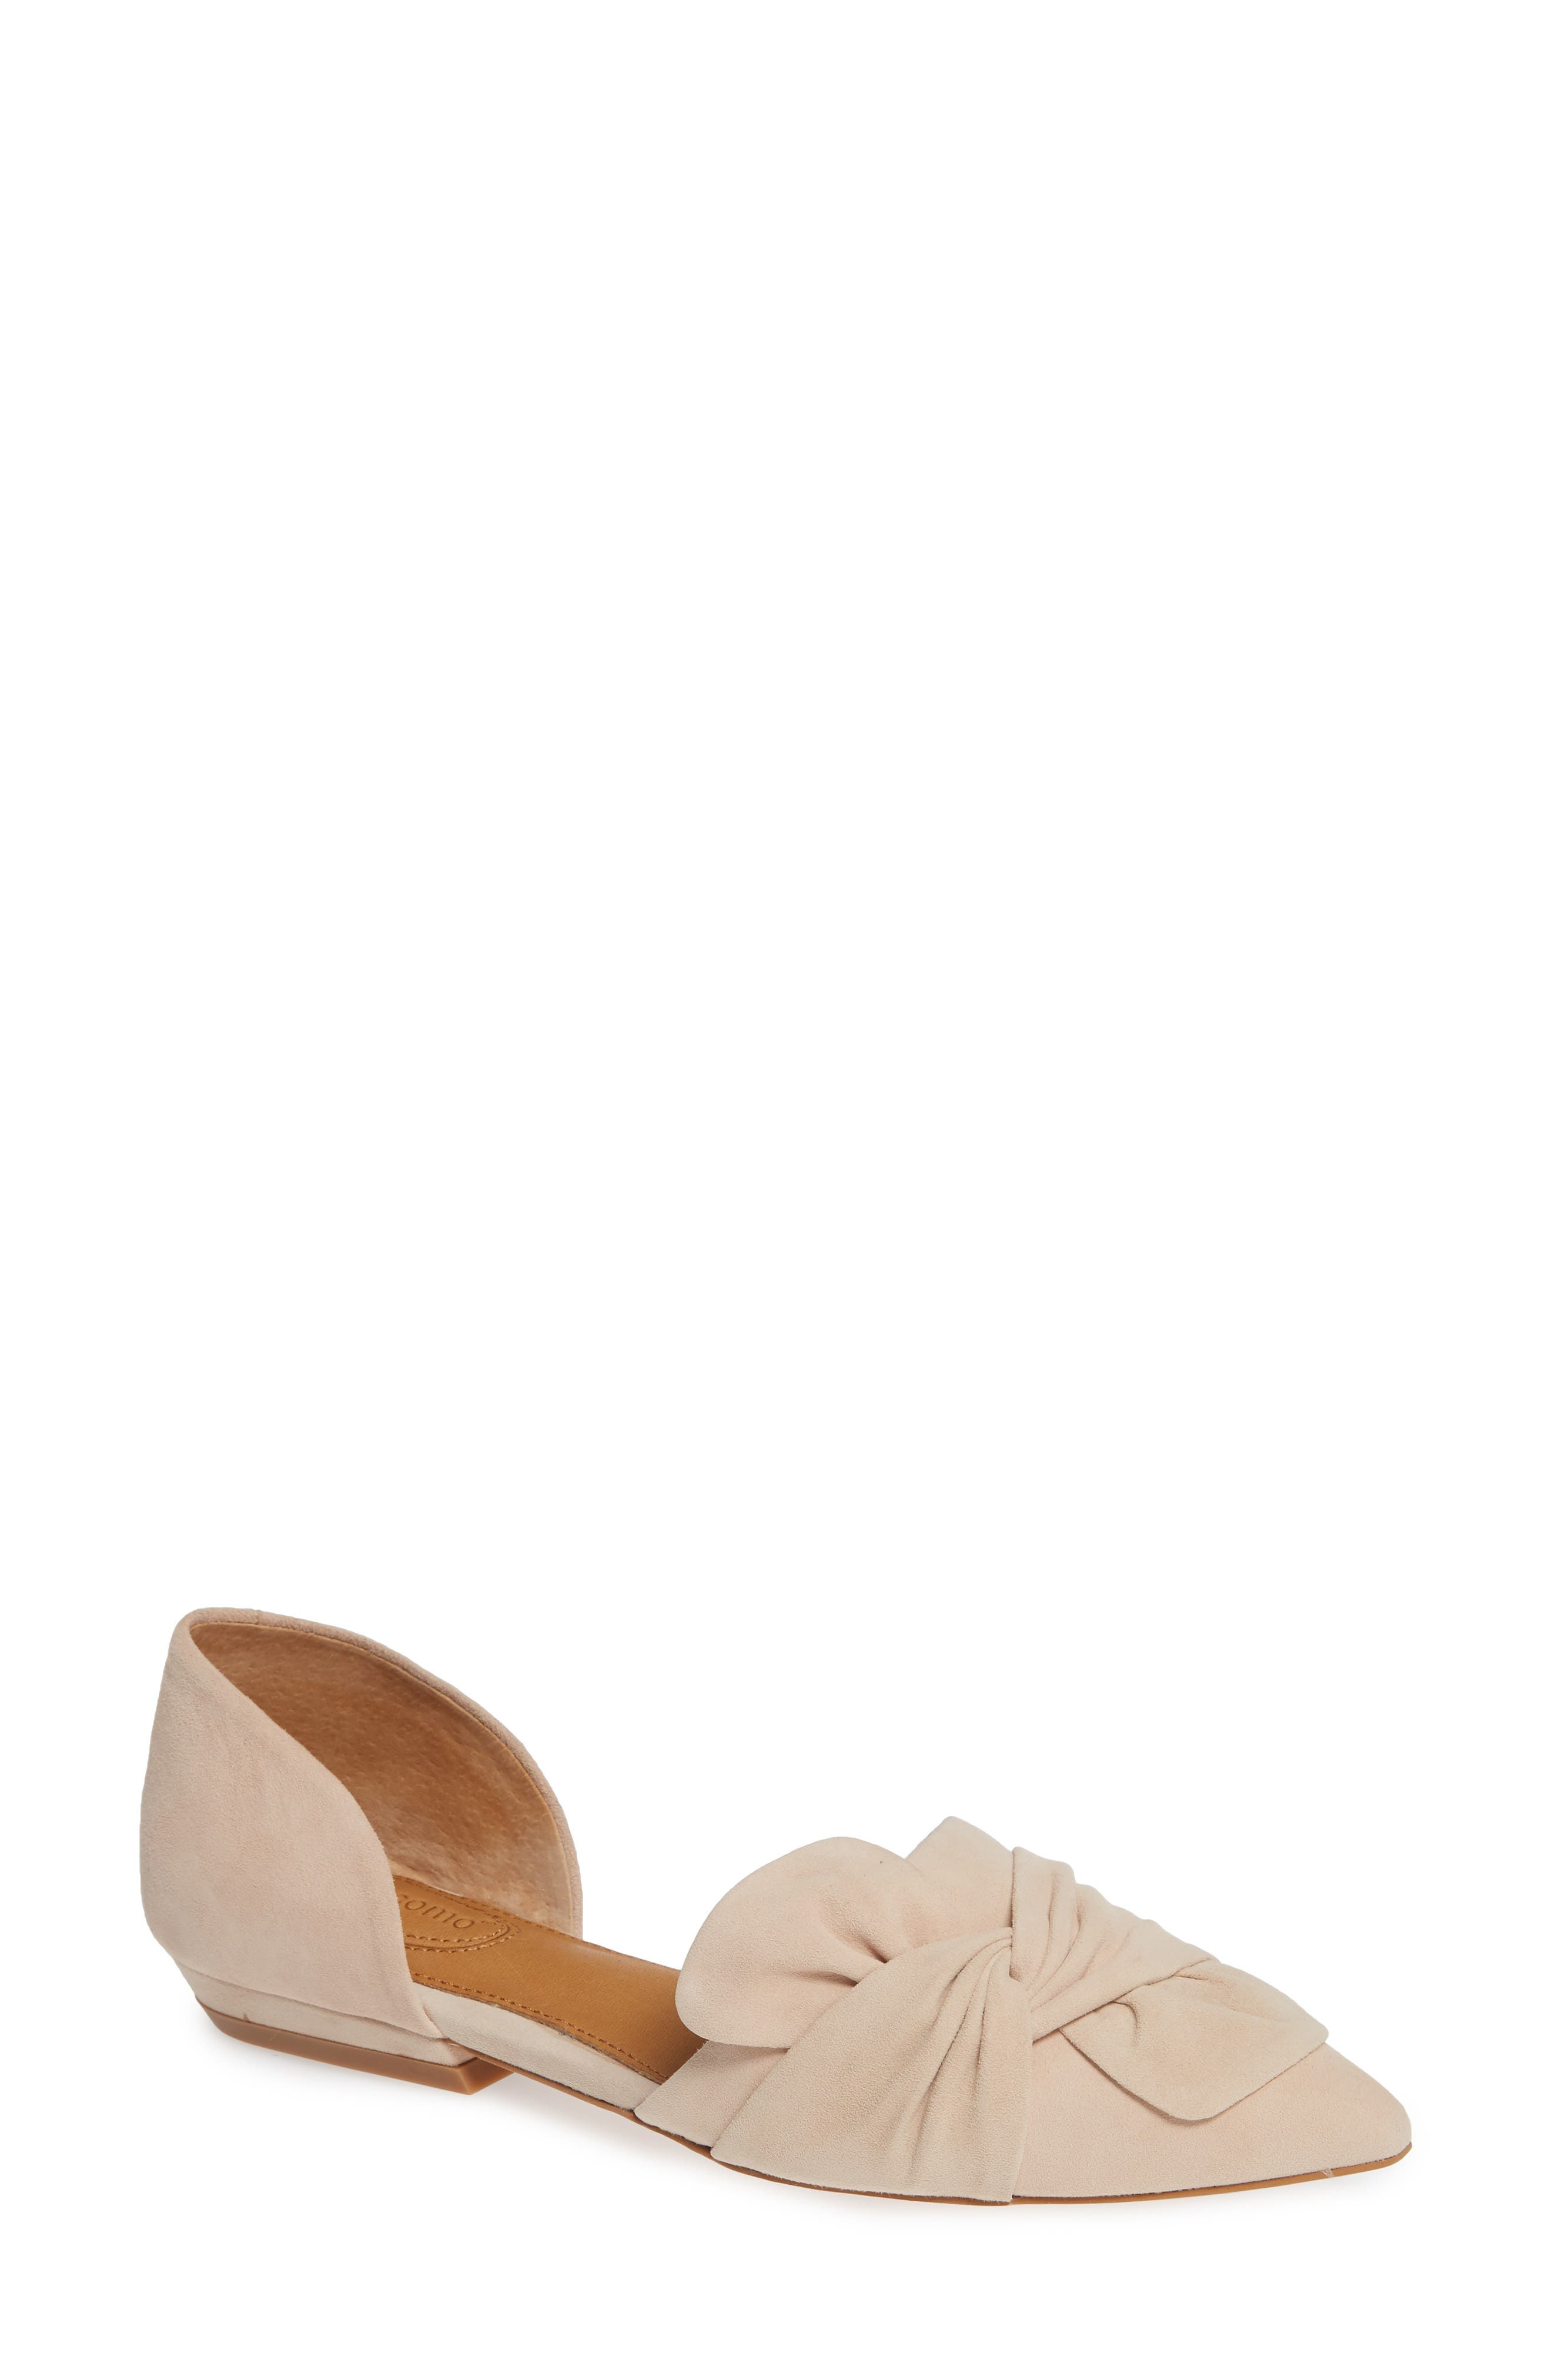 Mollie d'Orsay Flat,                             Main thumbnail 1, color,                             Nude Suede